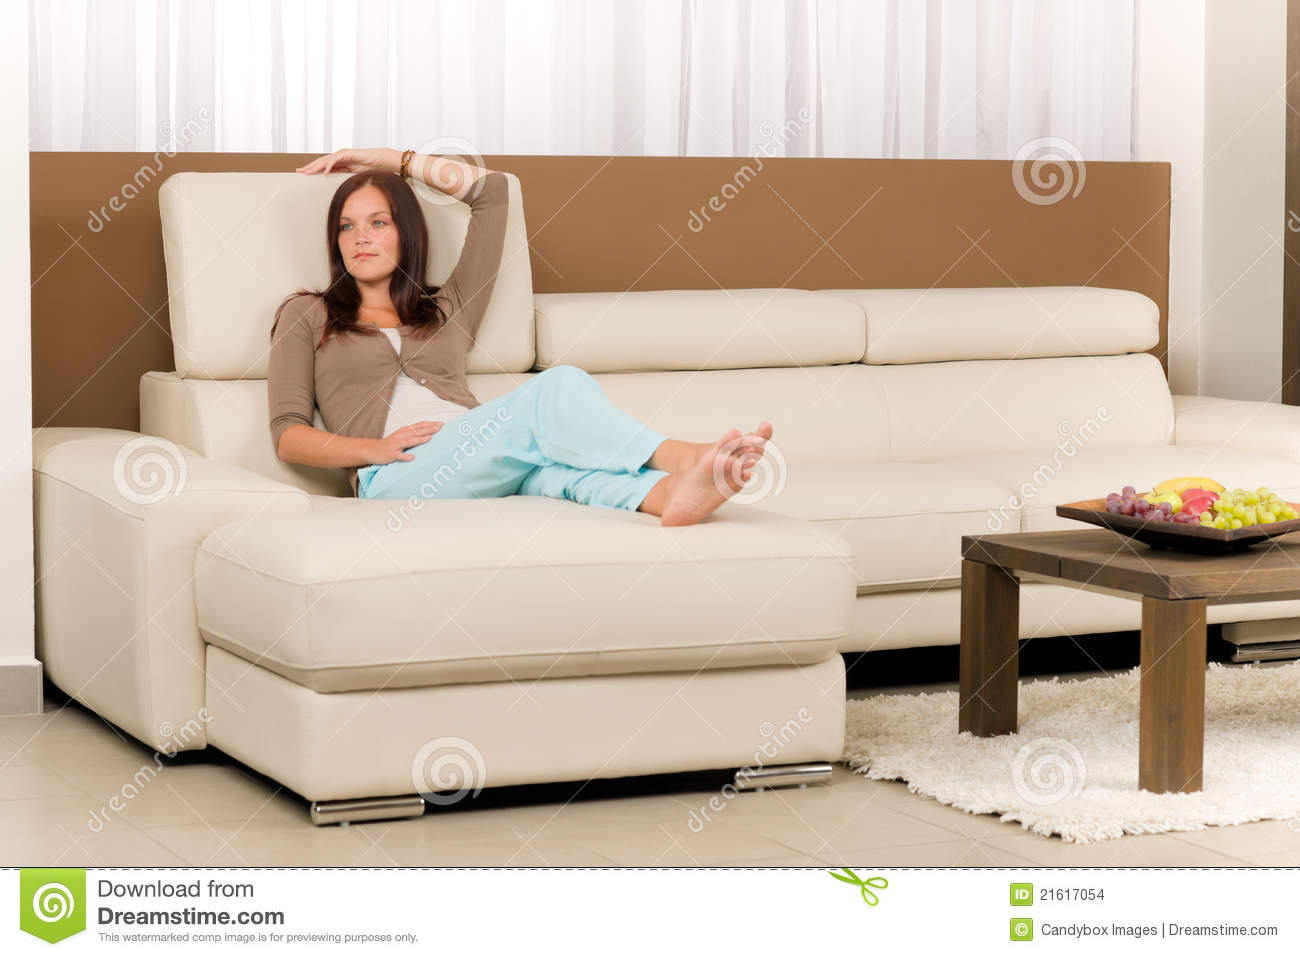 attractive woman relax living room leather sofa stock images image 21617054. Black Bedroom Furniture Sets. Home Design Ideas